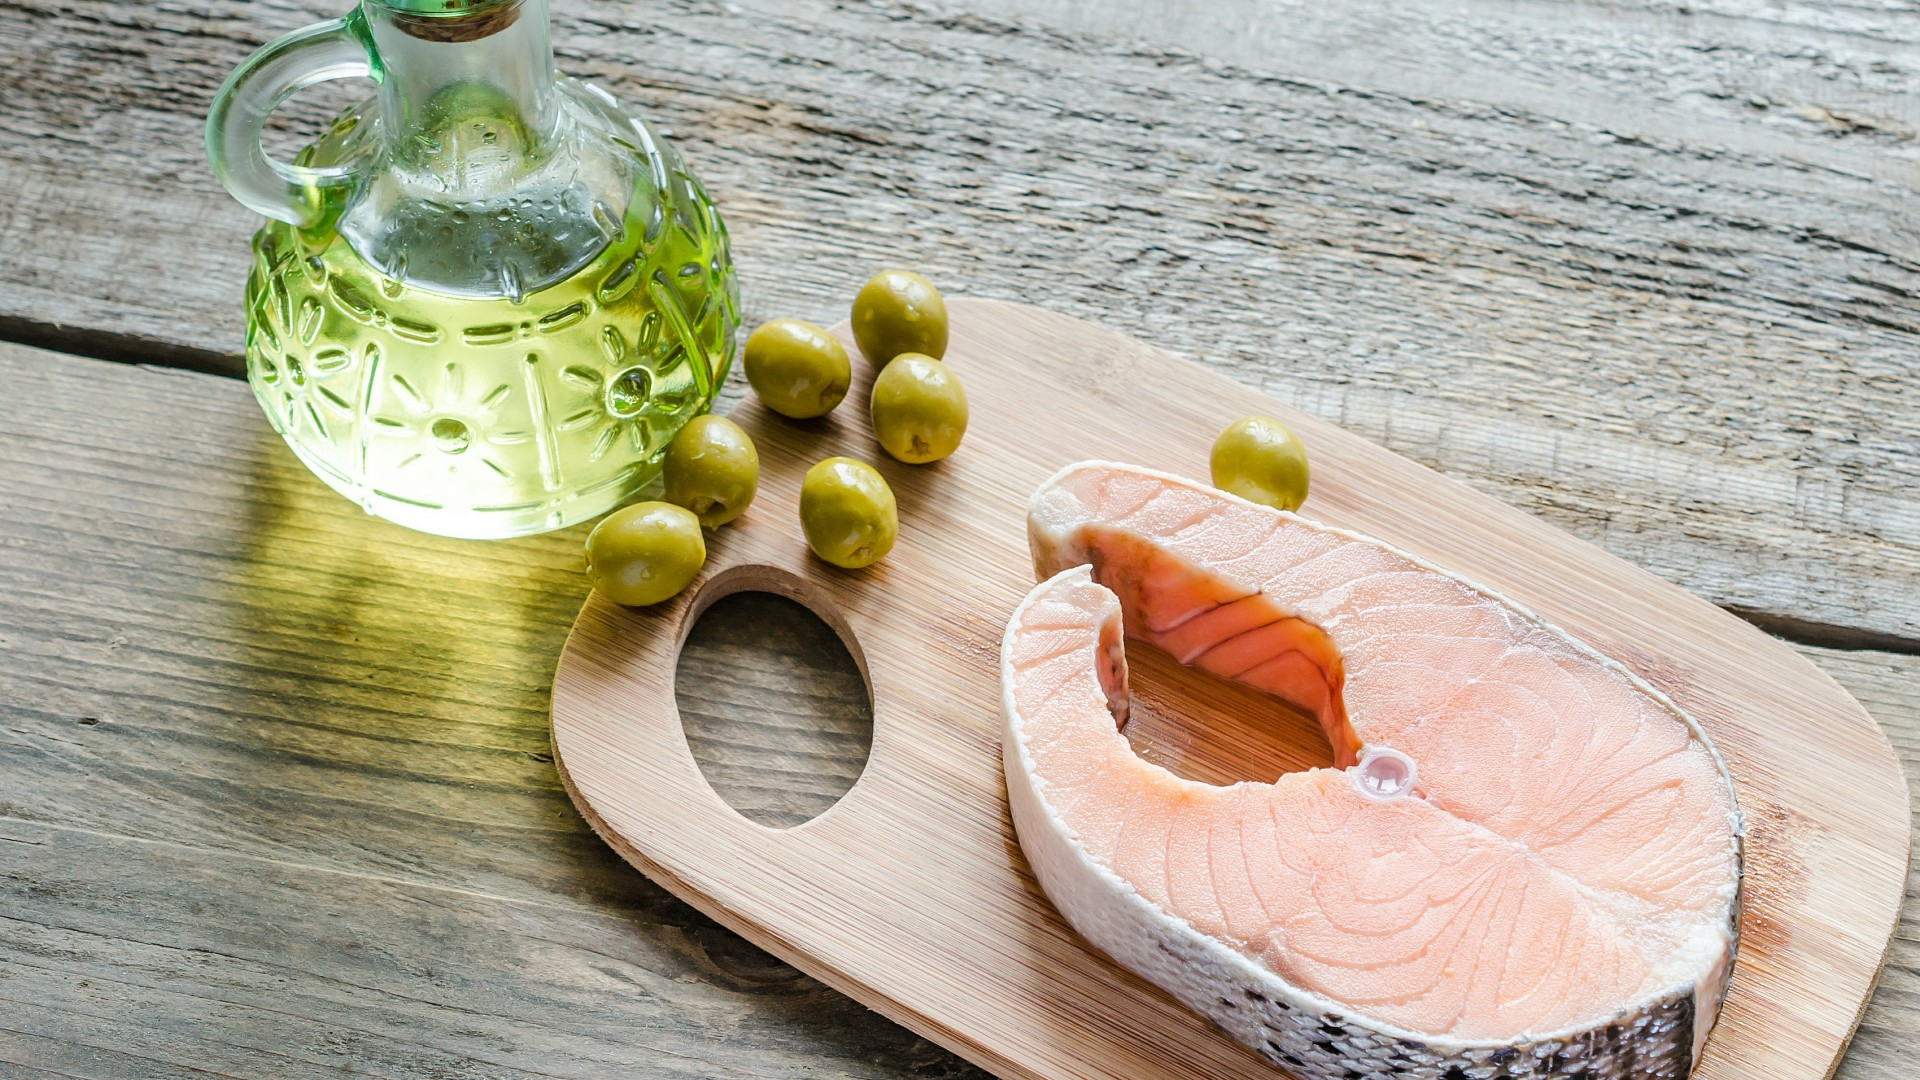 Wallpaper steak salmon olive oil olives food 764 for Frying fish in olive oil